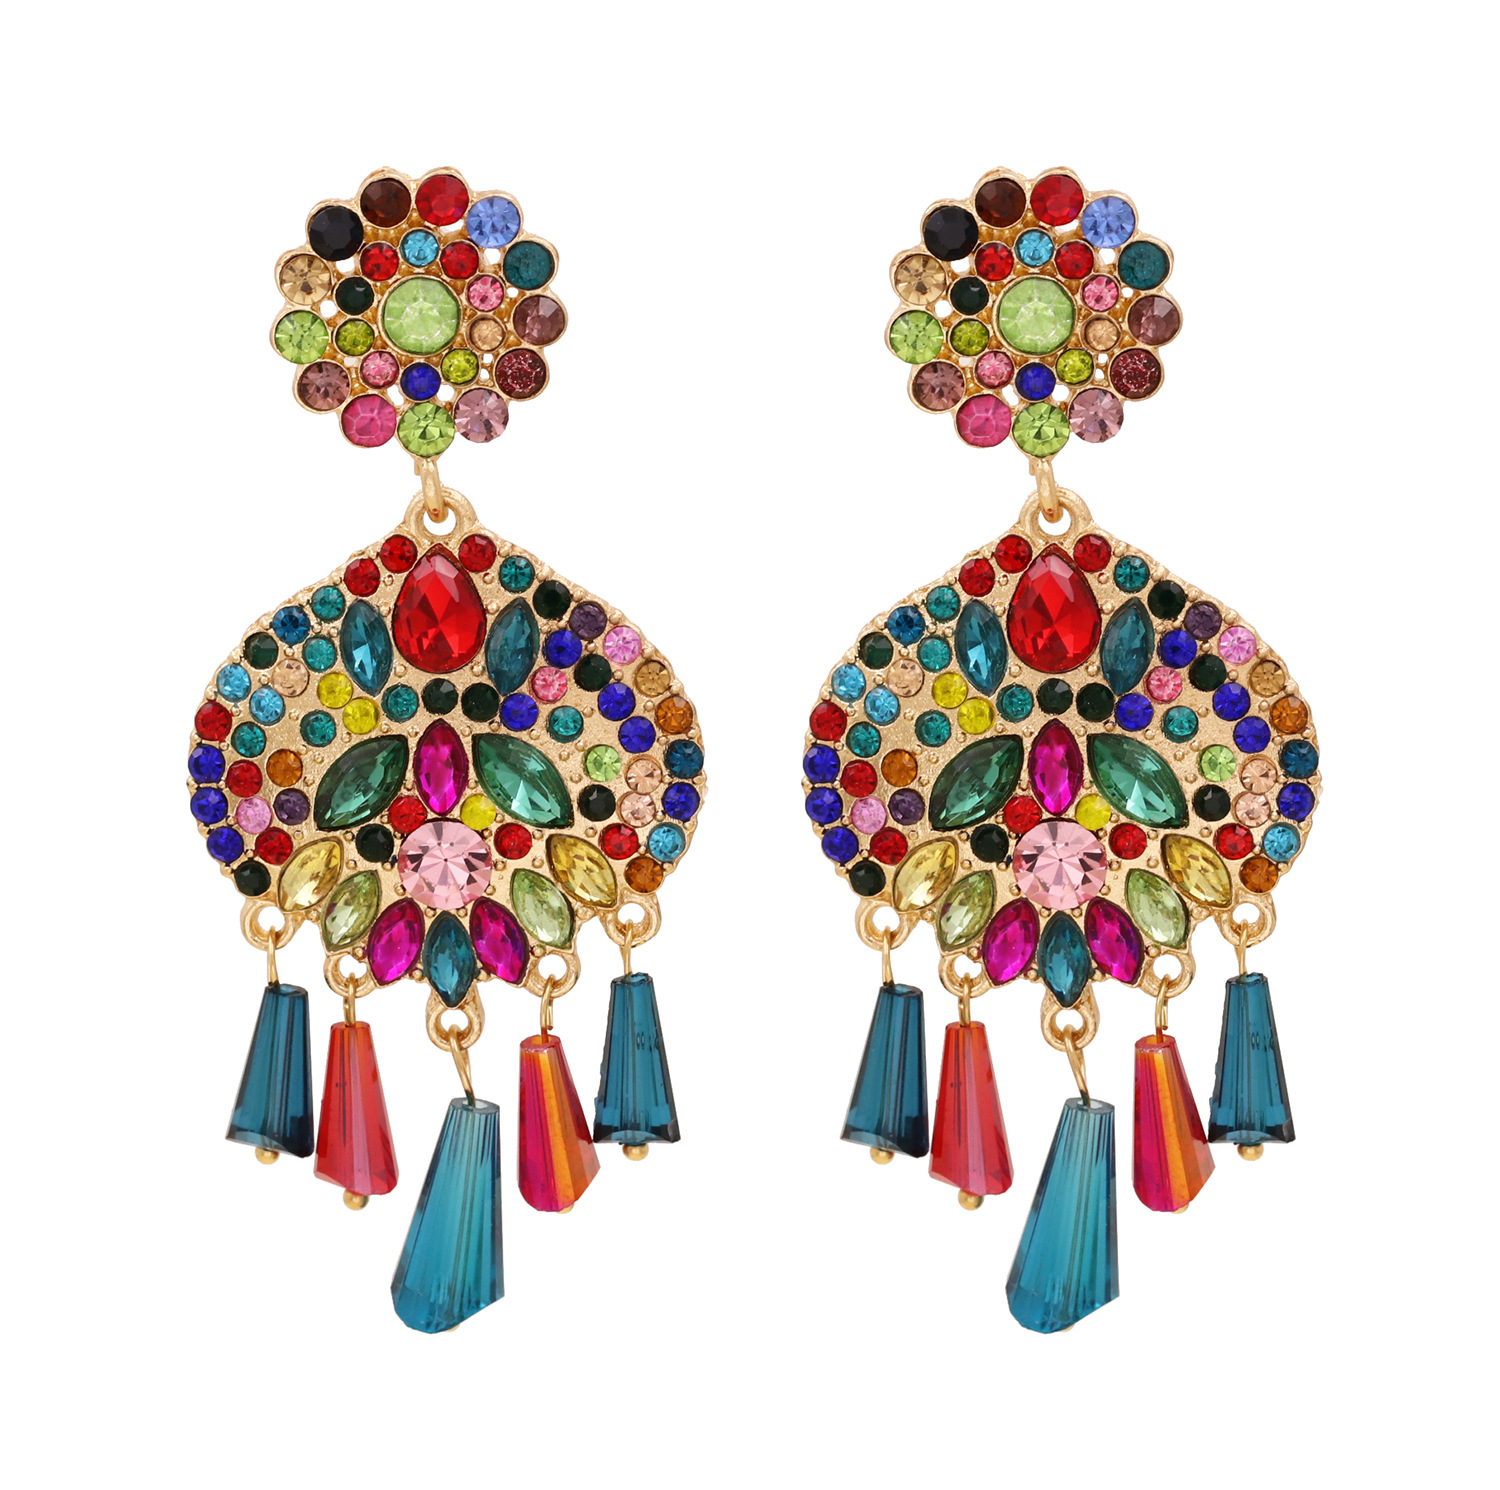 fashion new  exaggerated full diamond tassel earrings  national style personality pearl inlaid earrings nihaojewelry wholesale NHUI221134